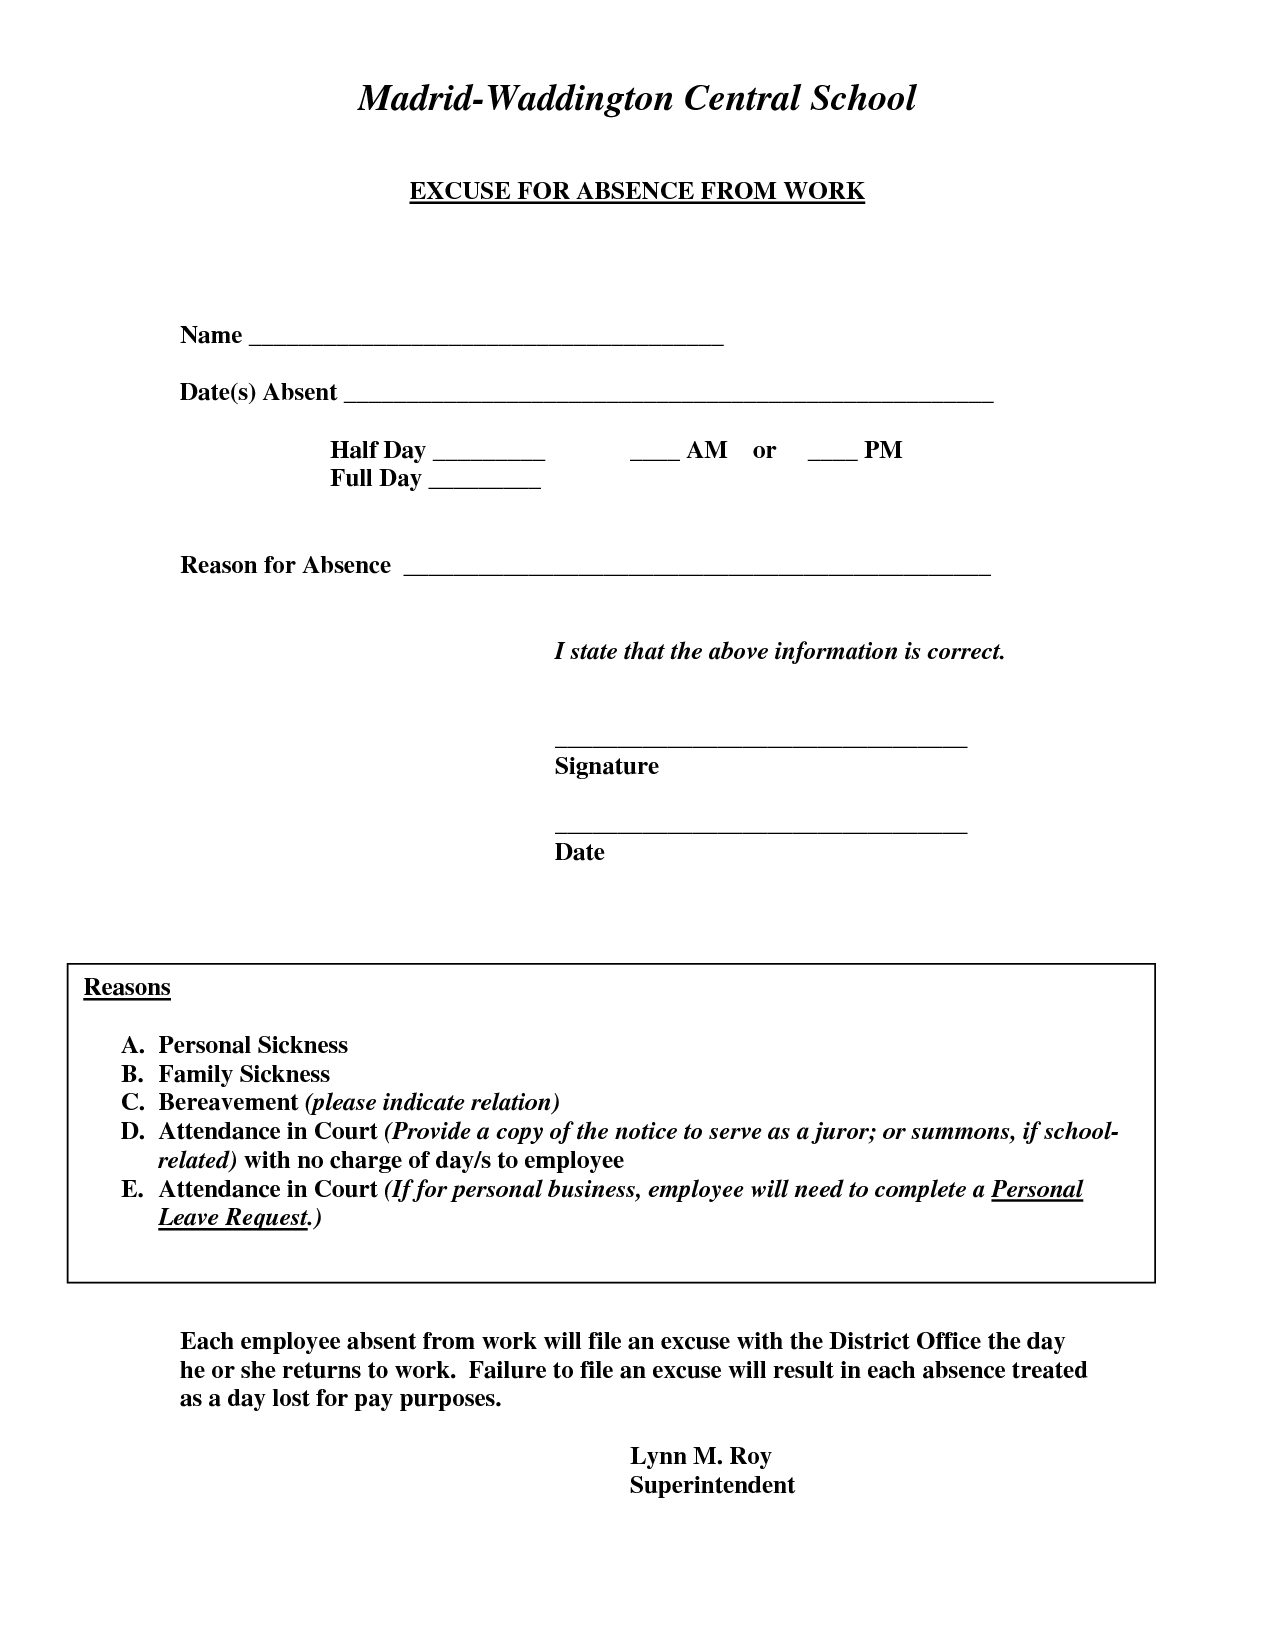 Doctors Excuse For Work Template   Excuse For Absence From Work - Free Printable Doctor Excuse Notes